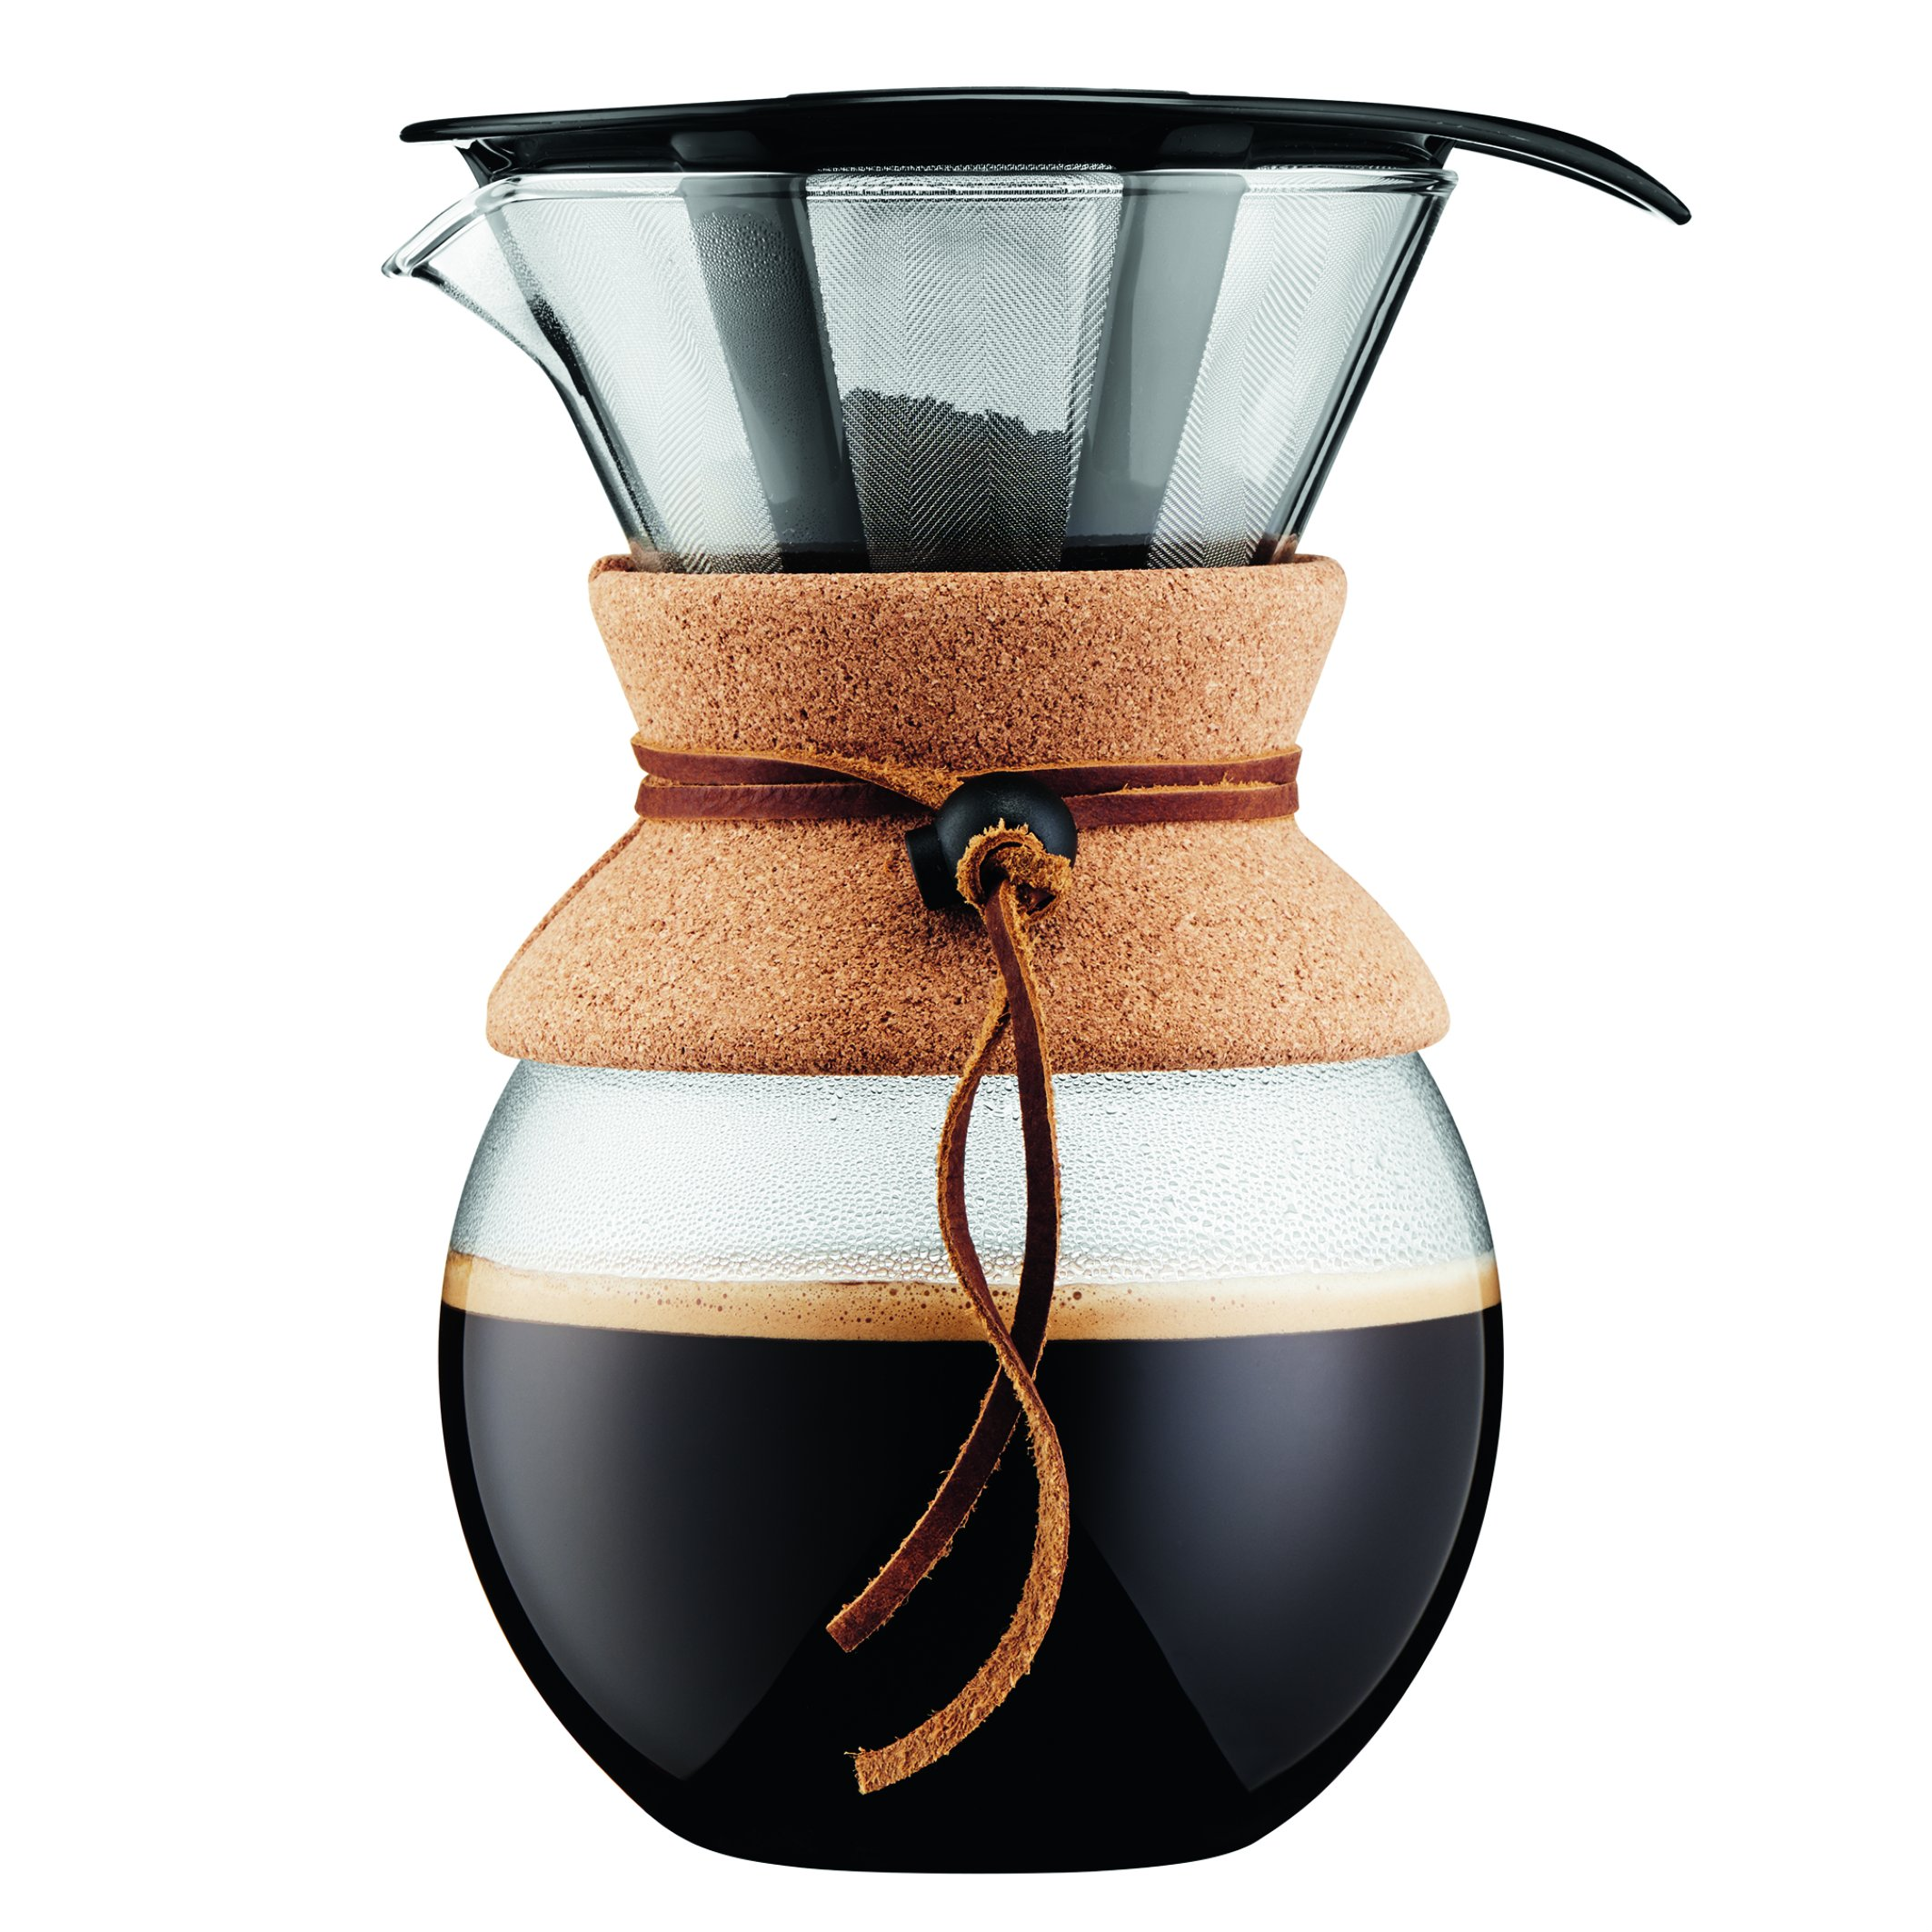 Bodum Pour Over Coffee Maker with Permanent Filter, Glass, 34 Ounce, 1 Liter, (8 Cup), Cork Band